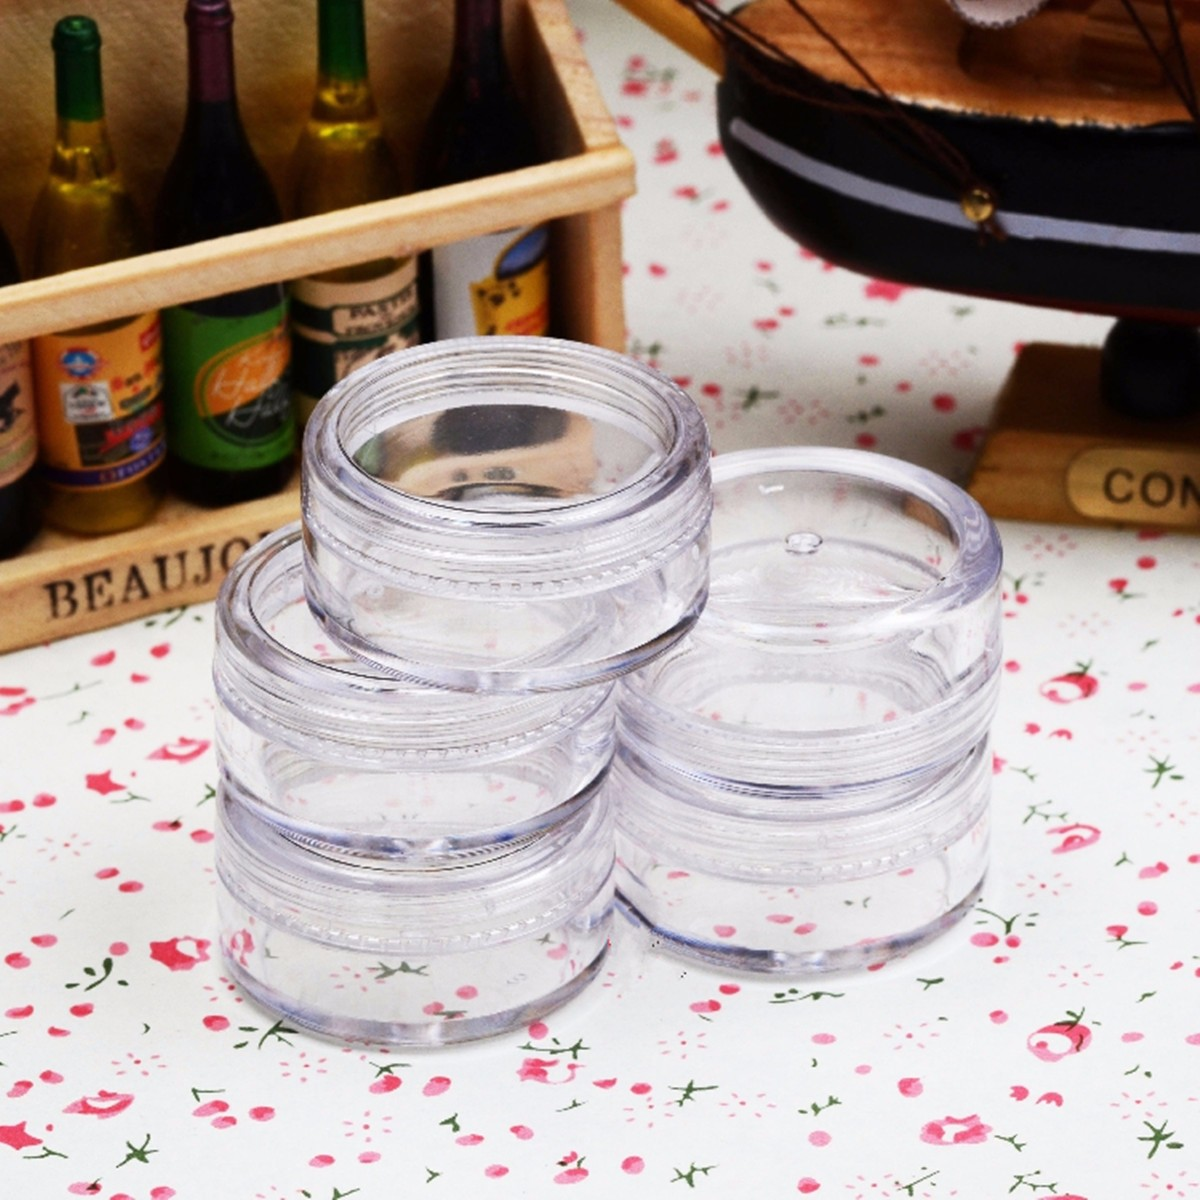 50Pcs 5mL Clear Empty Plastic Jar Round Pot Small Container w/ Lid for Cosmetic Lab Sample